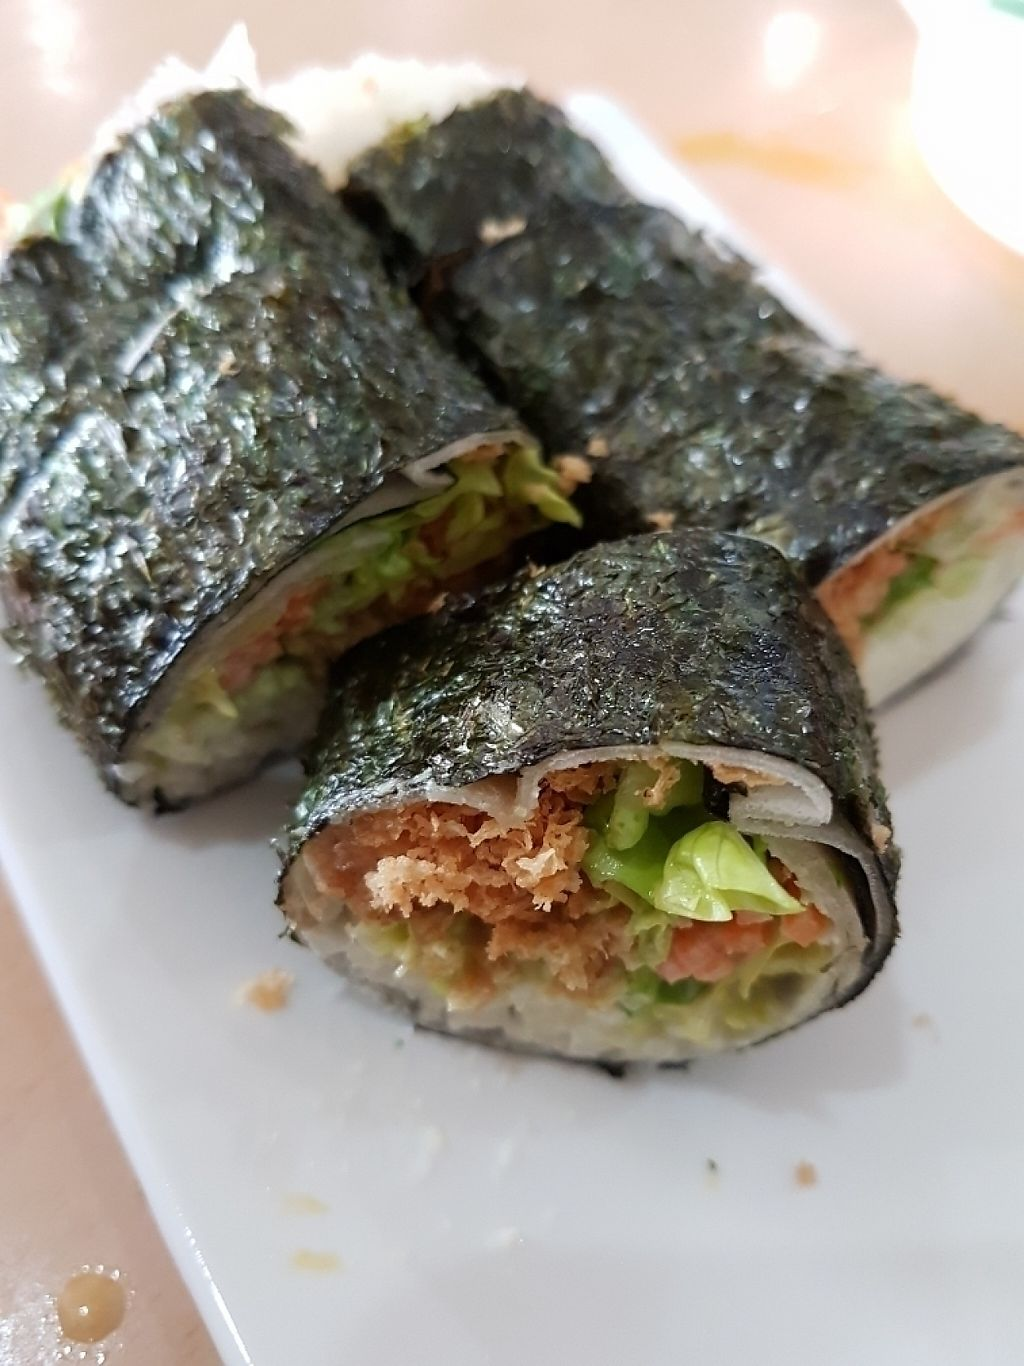 """Photo of Jing Si Vegetarian  by <a href=""""/members/profile/Raycklim01%40gmail.com"""">Raycklim01@gmail.com</a> <br/>sushi Popiah  <br/> May 9, 2017  - <a href='/contact/abuse/image/19728/257314'>Report</a>"""